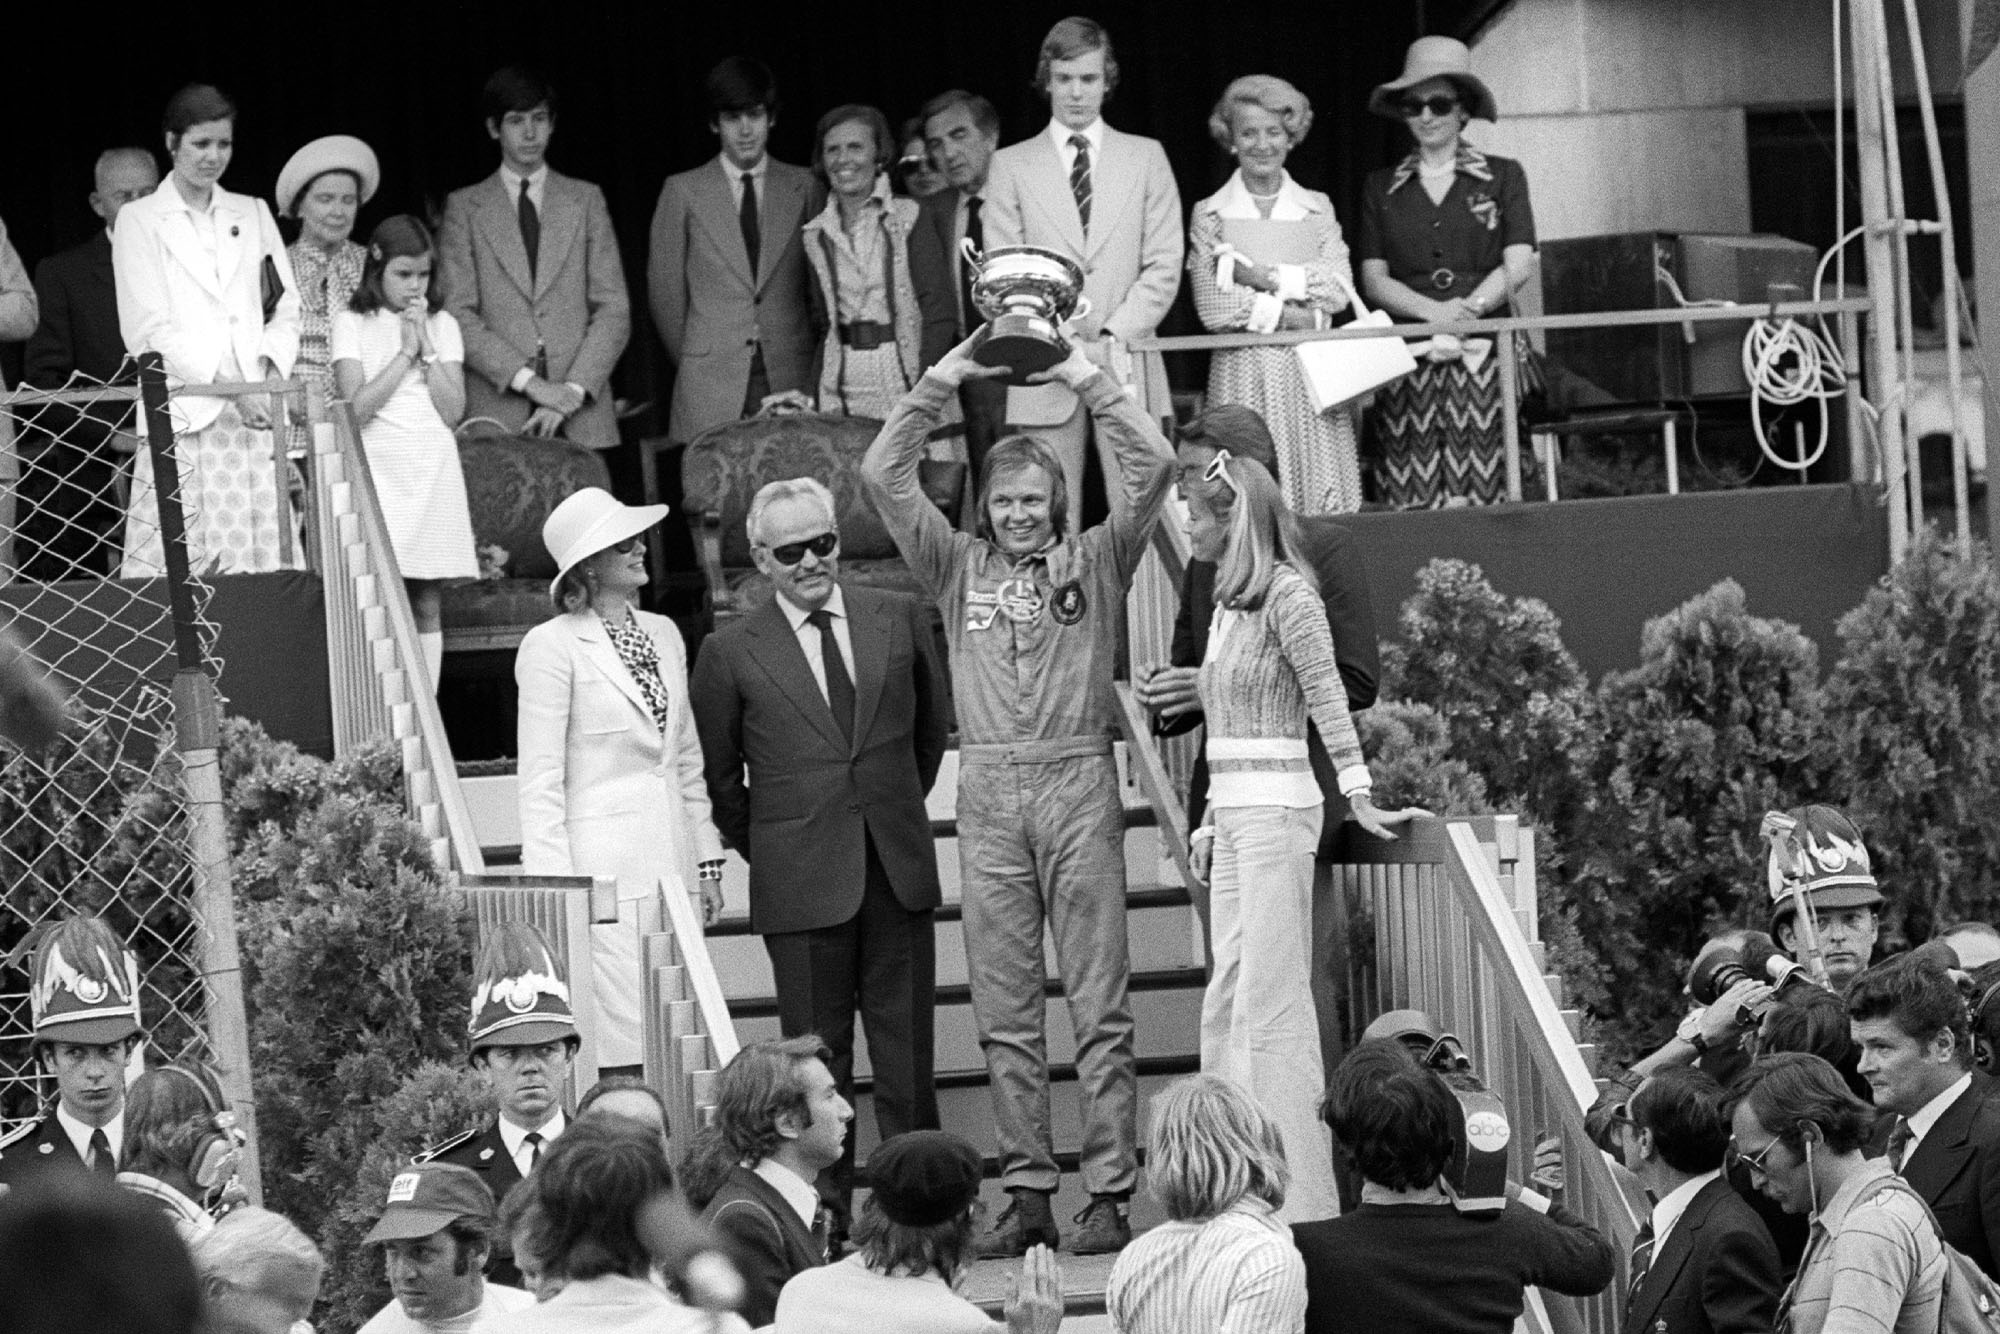 Ronnie Peterson holds the trophy aloft at the 1974 Monaco Grand Prix.